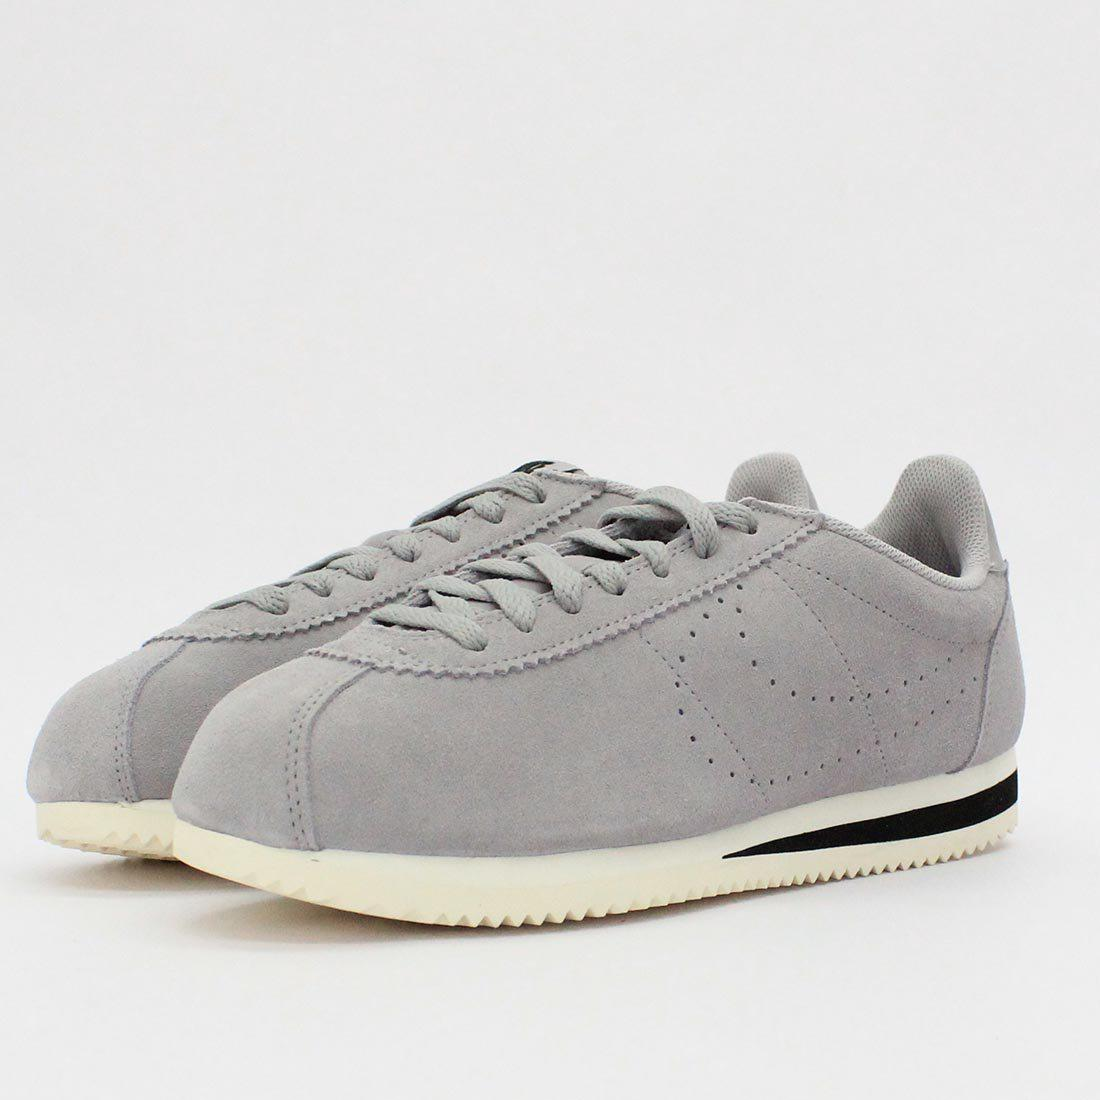 ... Nike Classic Cortez Suede Atmosphere Grey Aa3108 001 for Men - Lyst.  View fullscreen 3aa56bf793fa